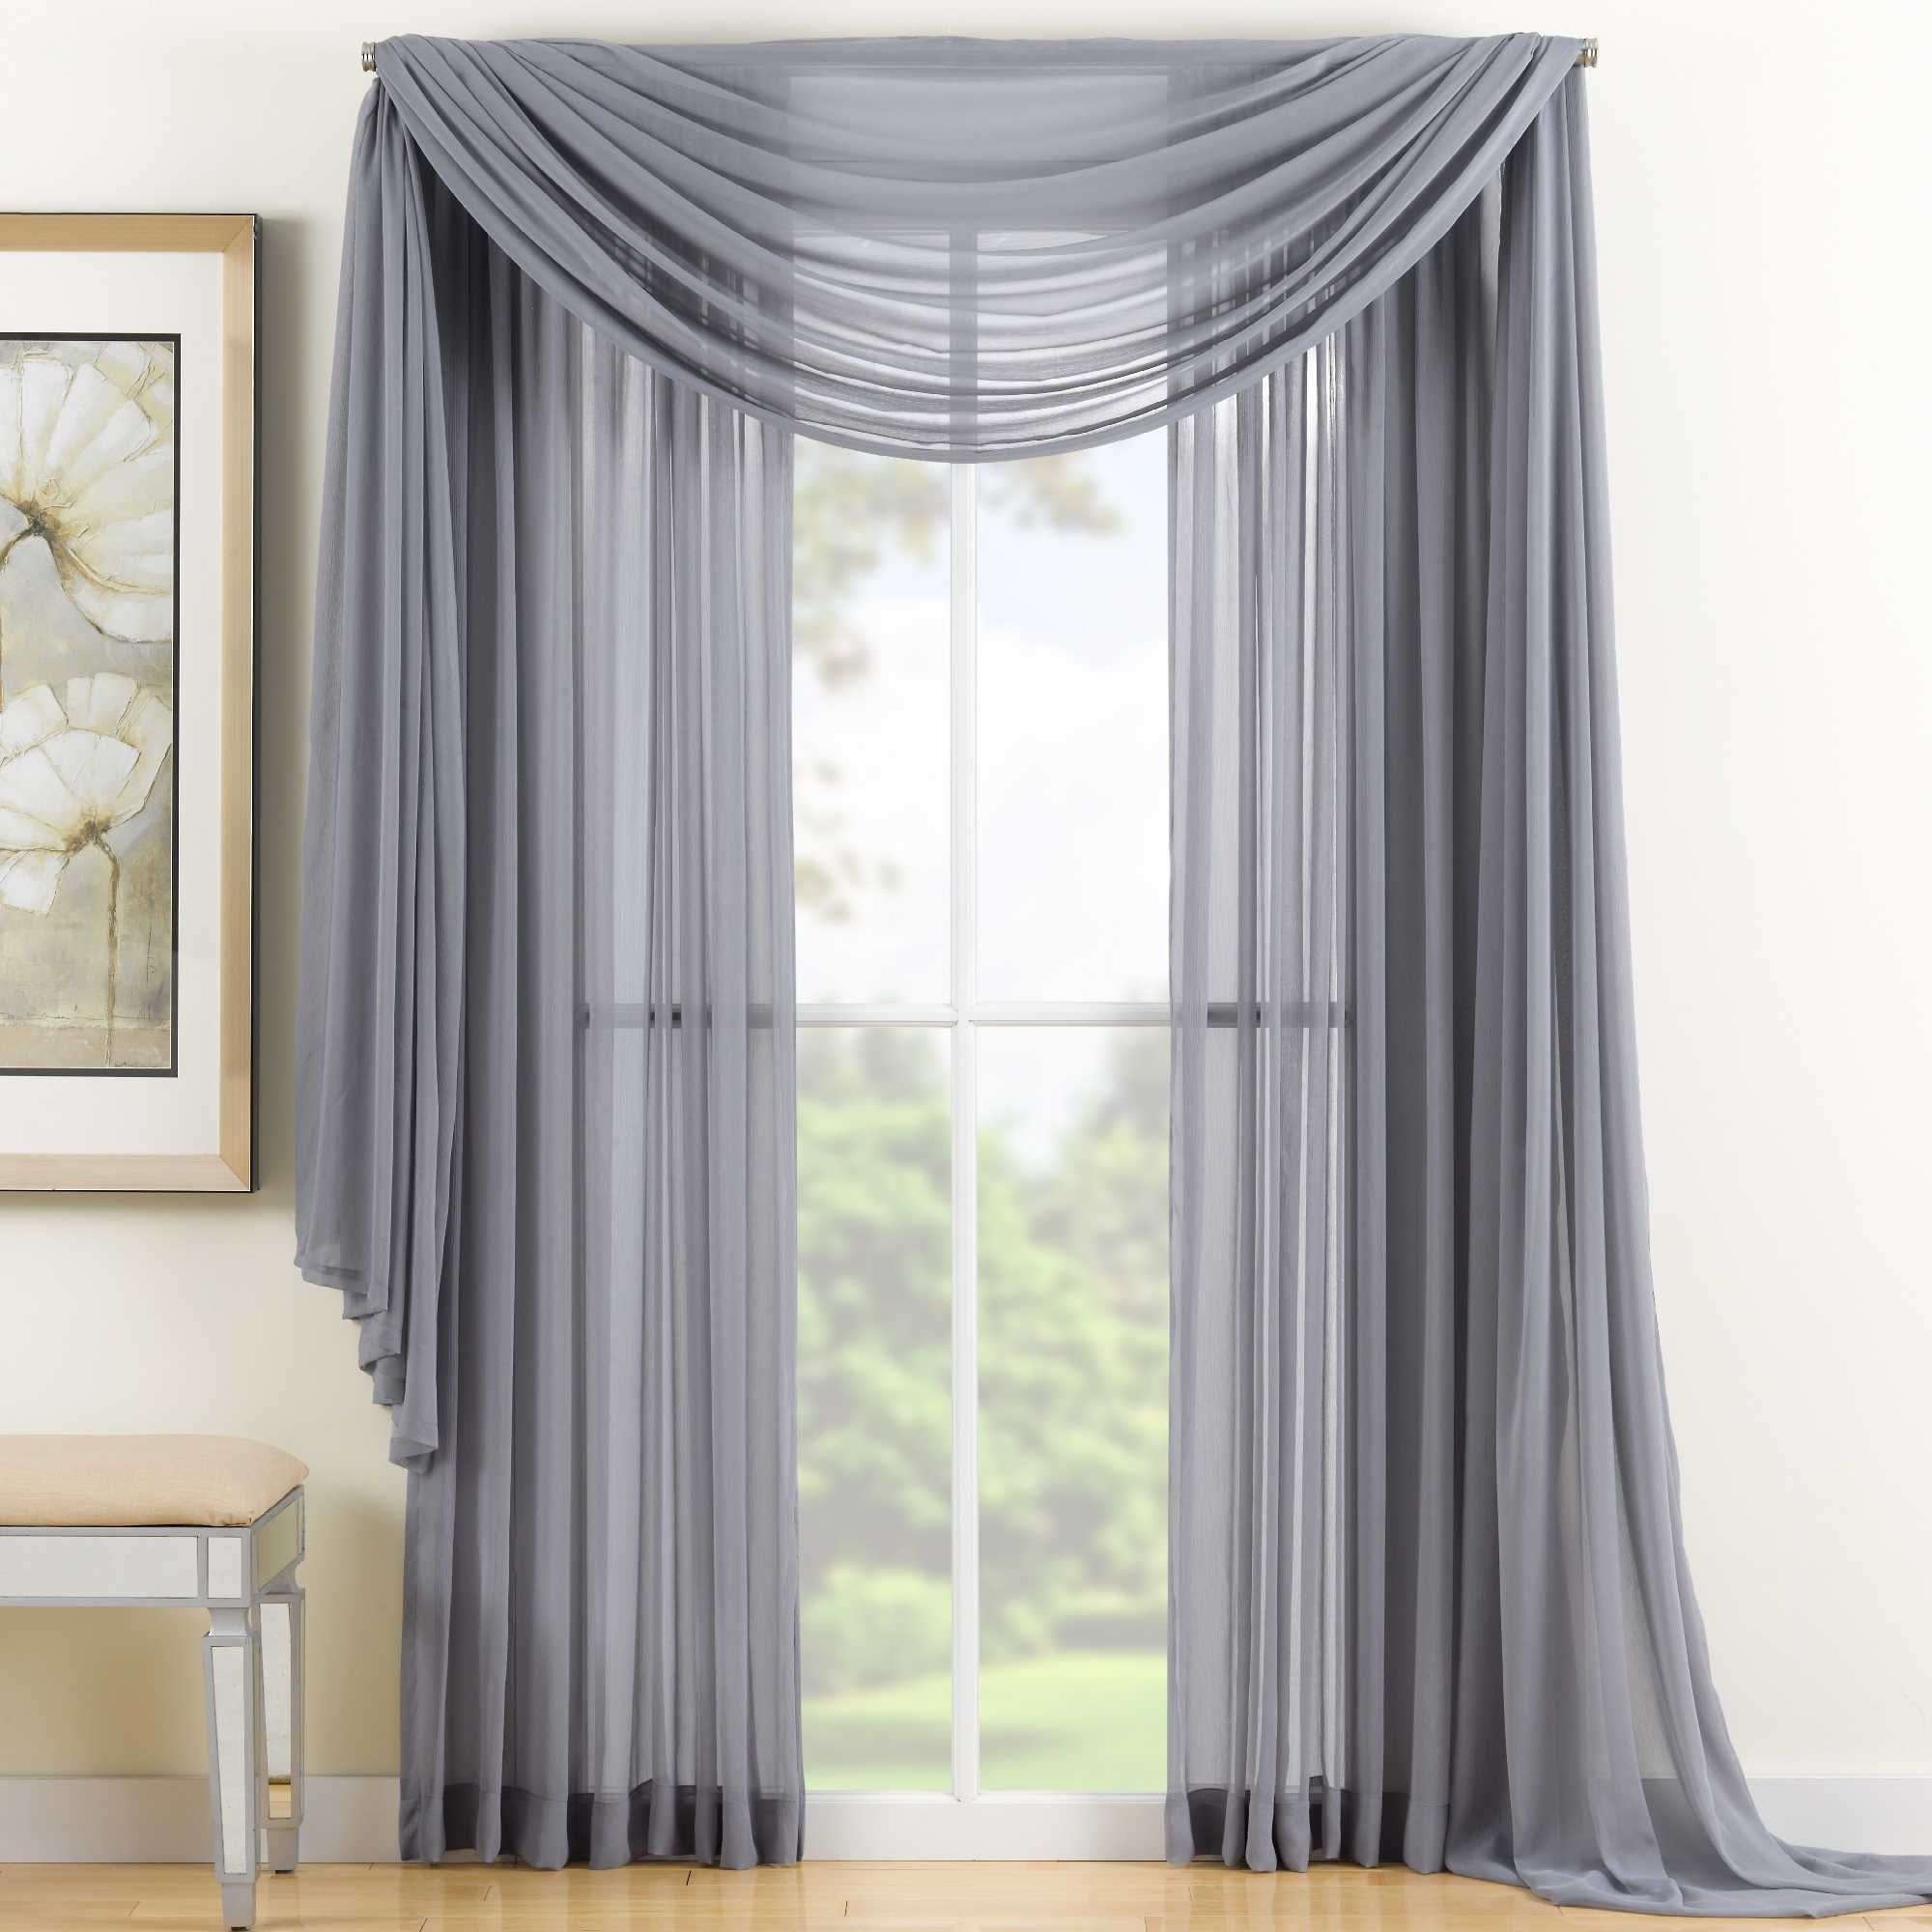 curtain ideas crushed window scarf valance treatment tailored whisper p satin x panel